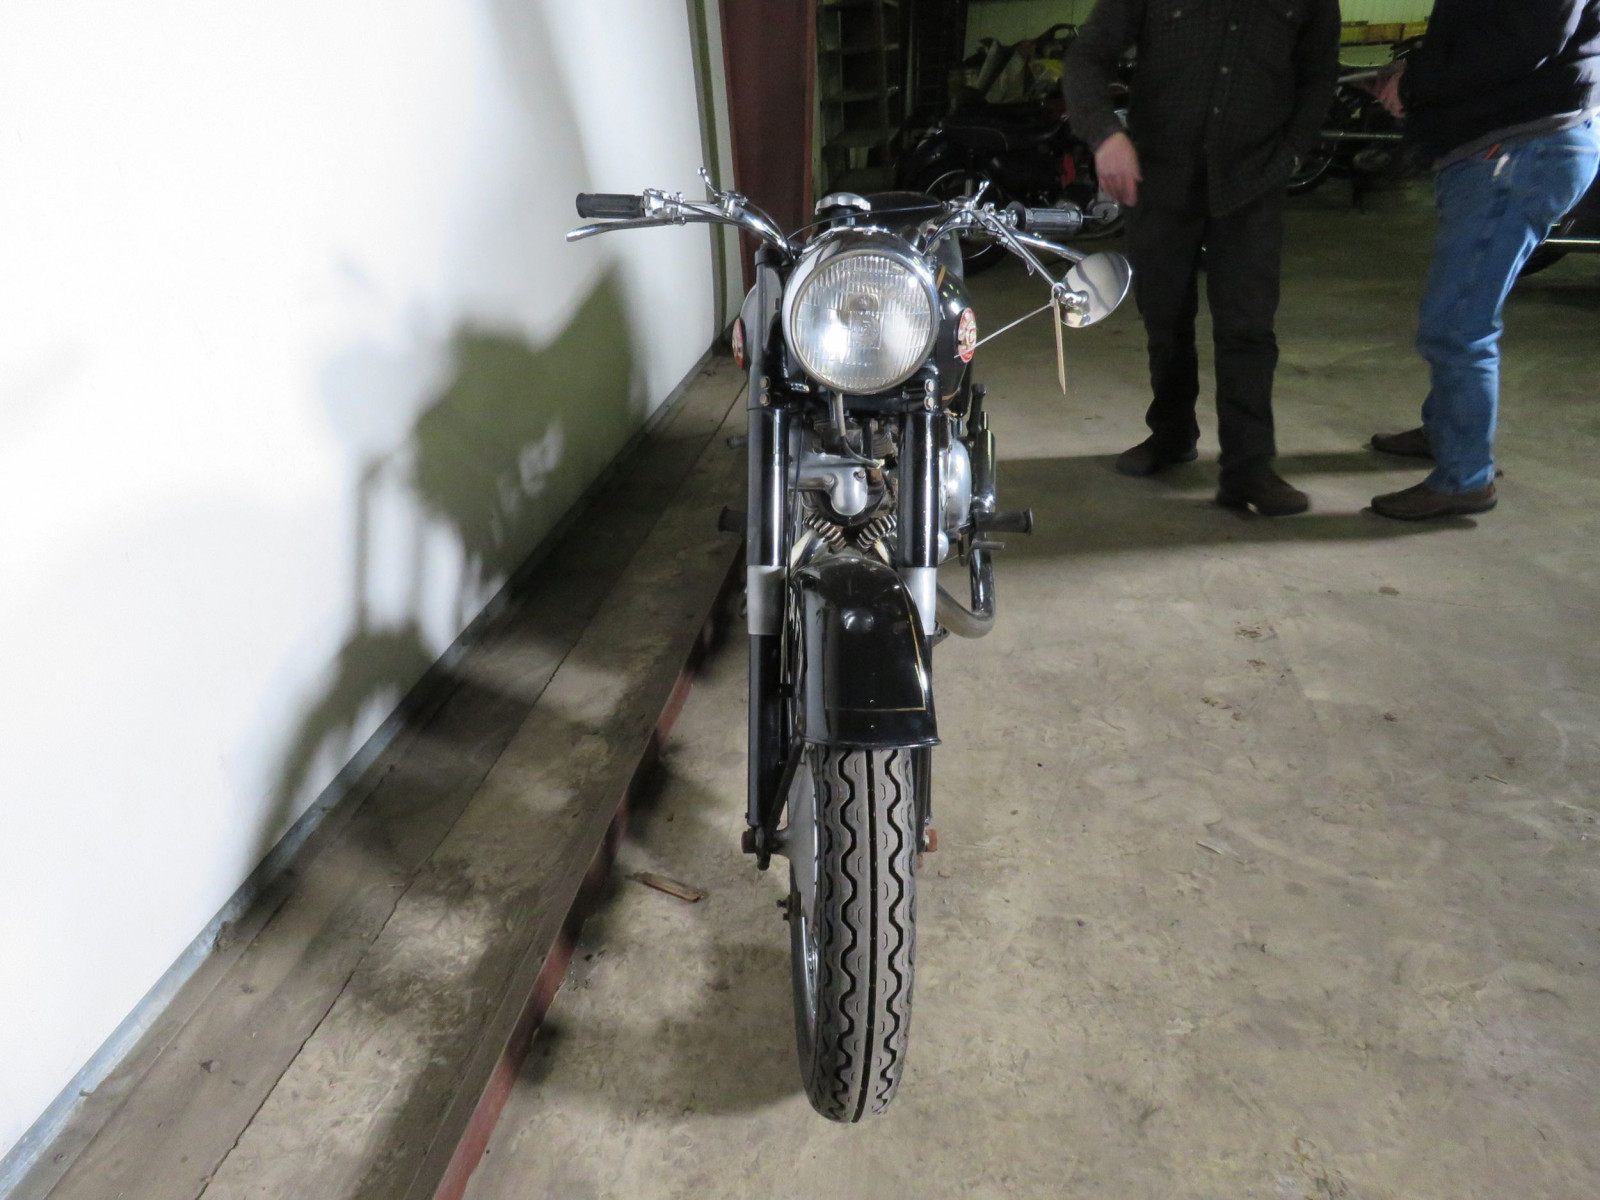 1959 Panther Model 120 Motorcycle - Image 11